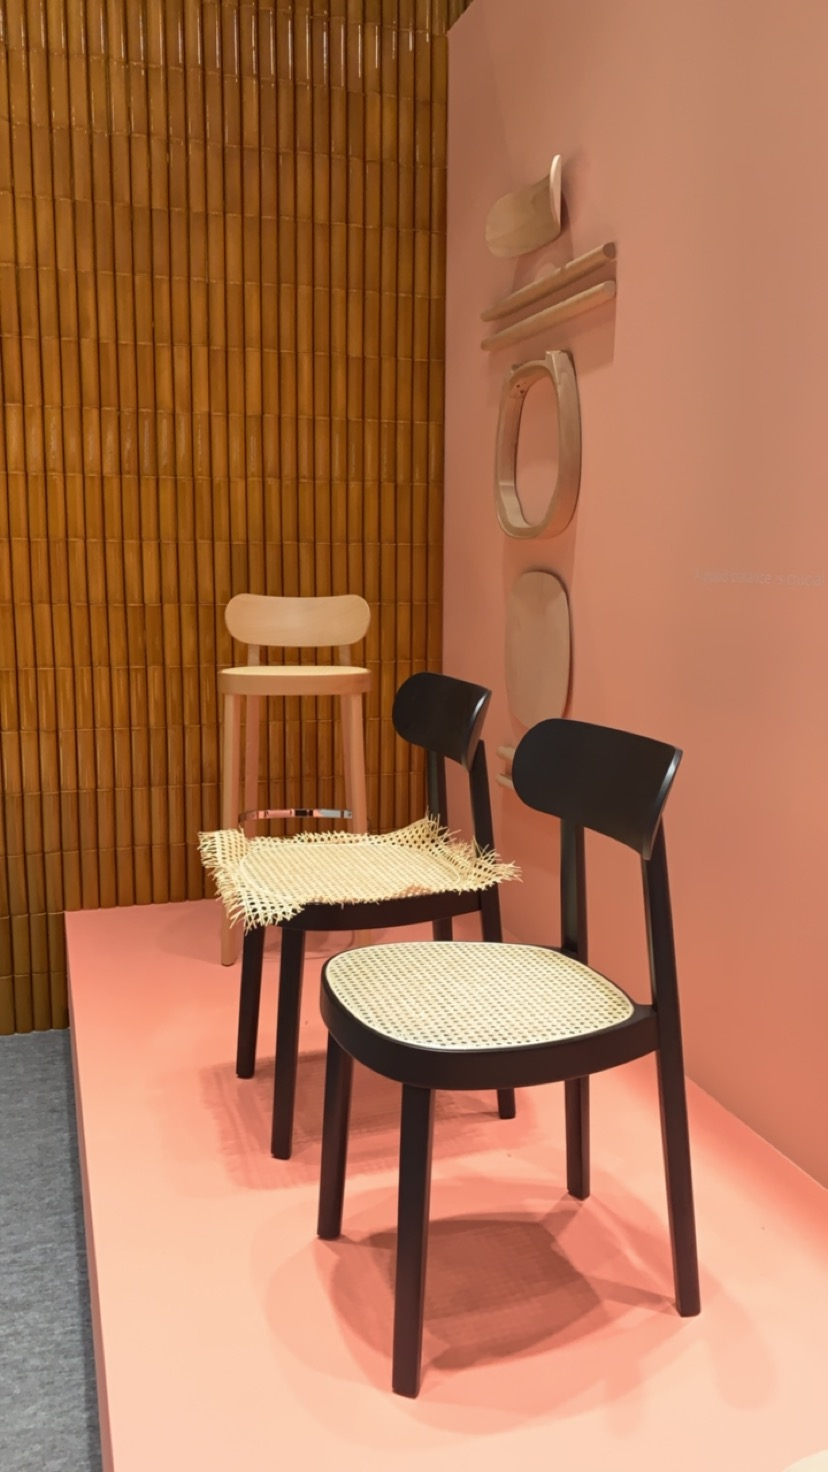 Interior deisgner Sophie Robinson reports on the interior design trend for cane furniture at maison and objet.